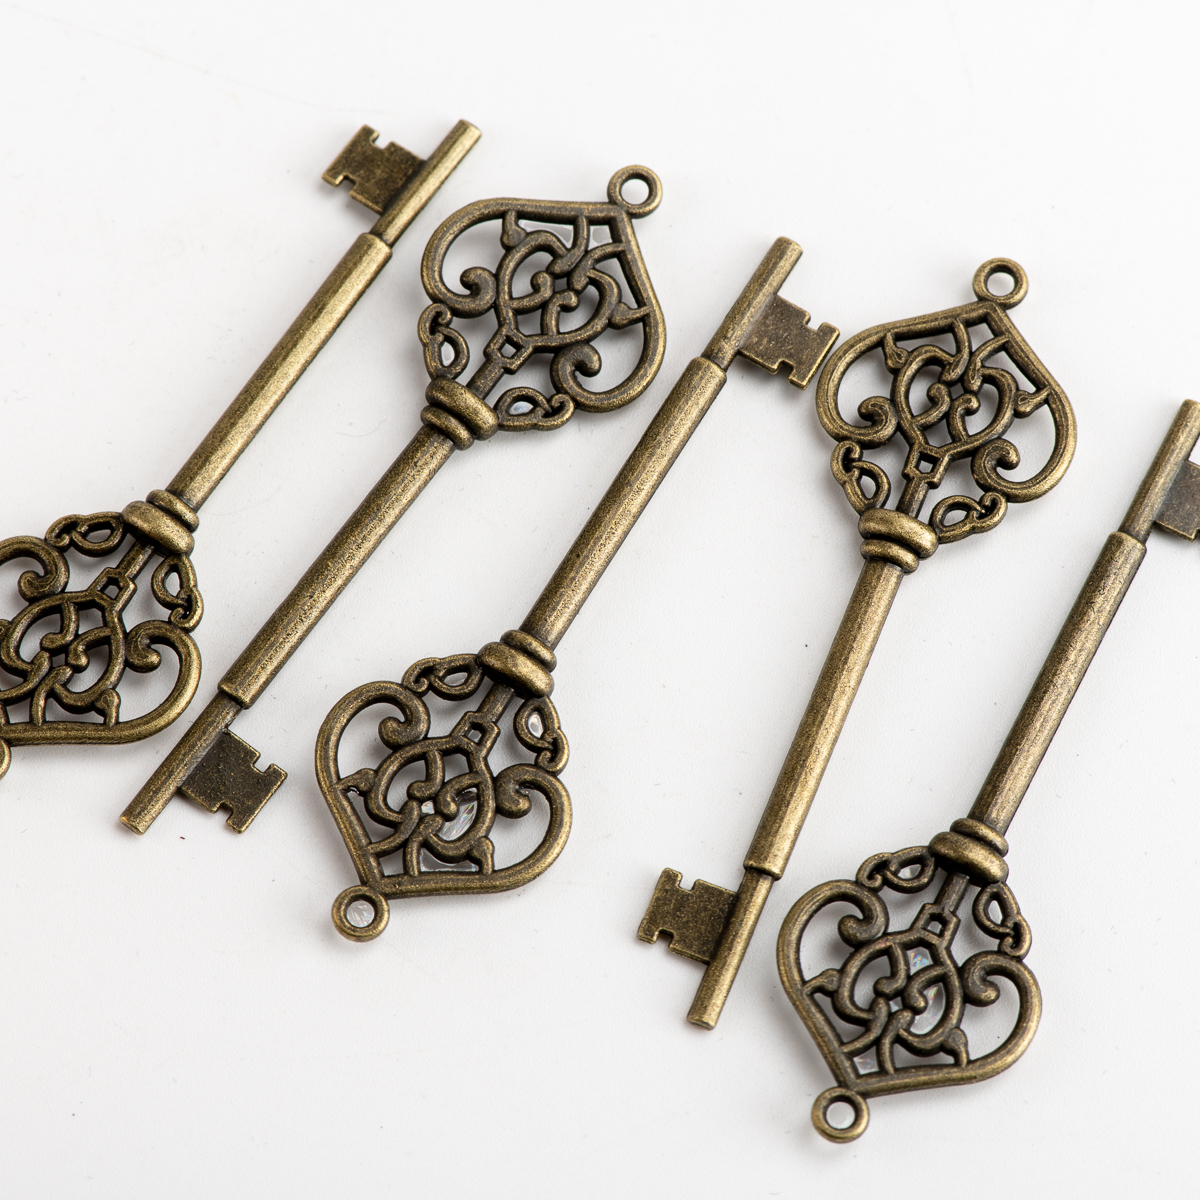 Key Shape DIY Alloy Pendant Jewelry Findings Charms Jewelry Findings & Components For Jewelry Making #JY202